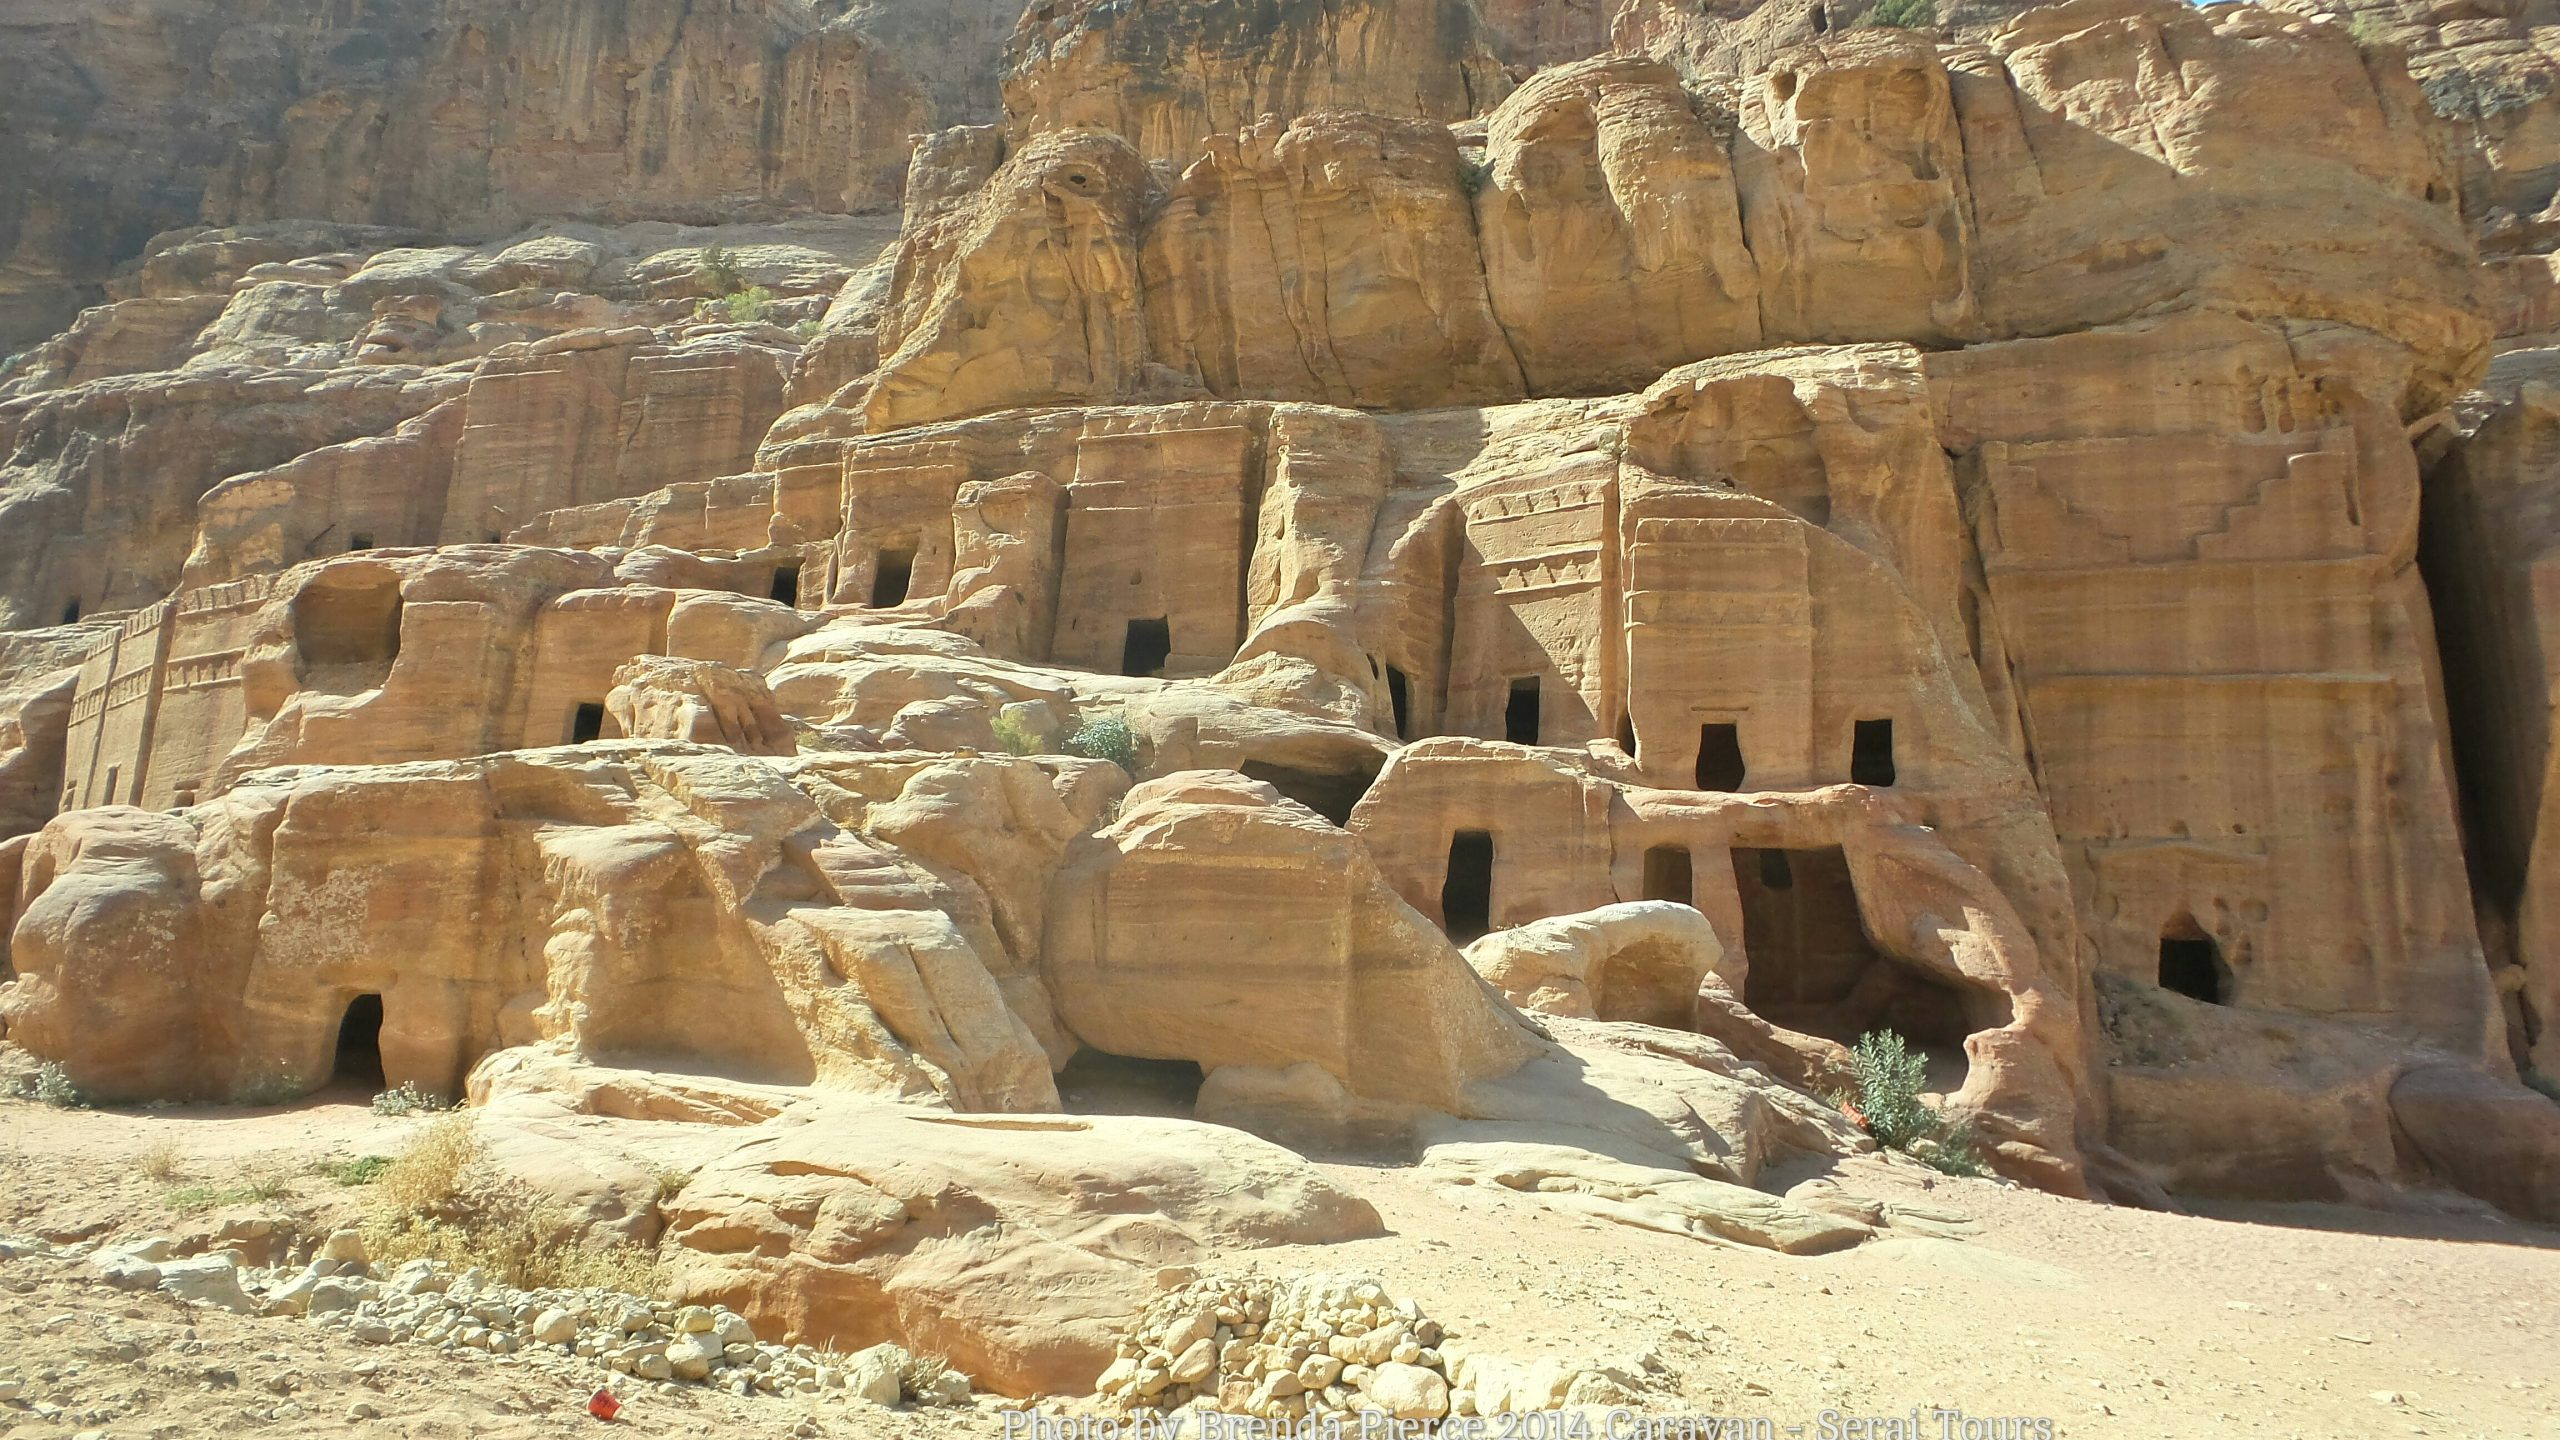 Travel to Jordan in 2021